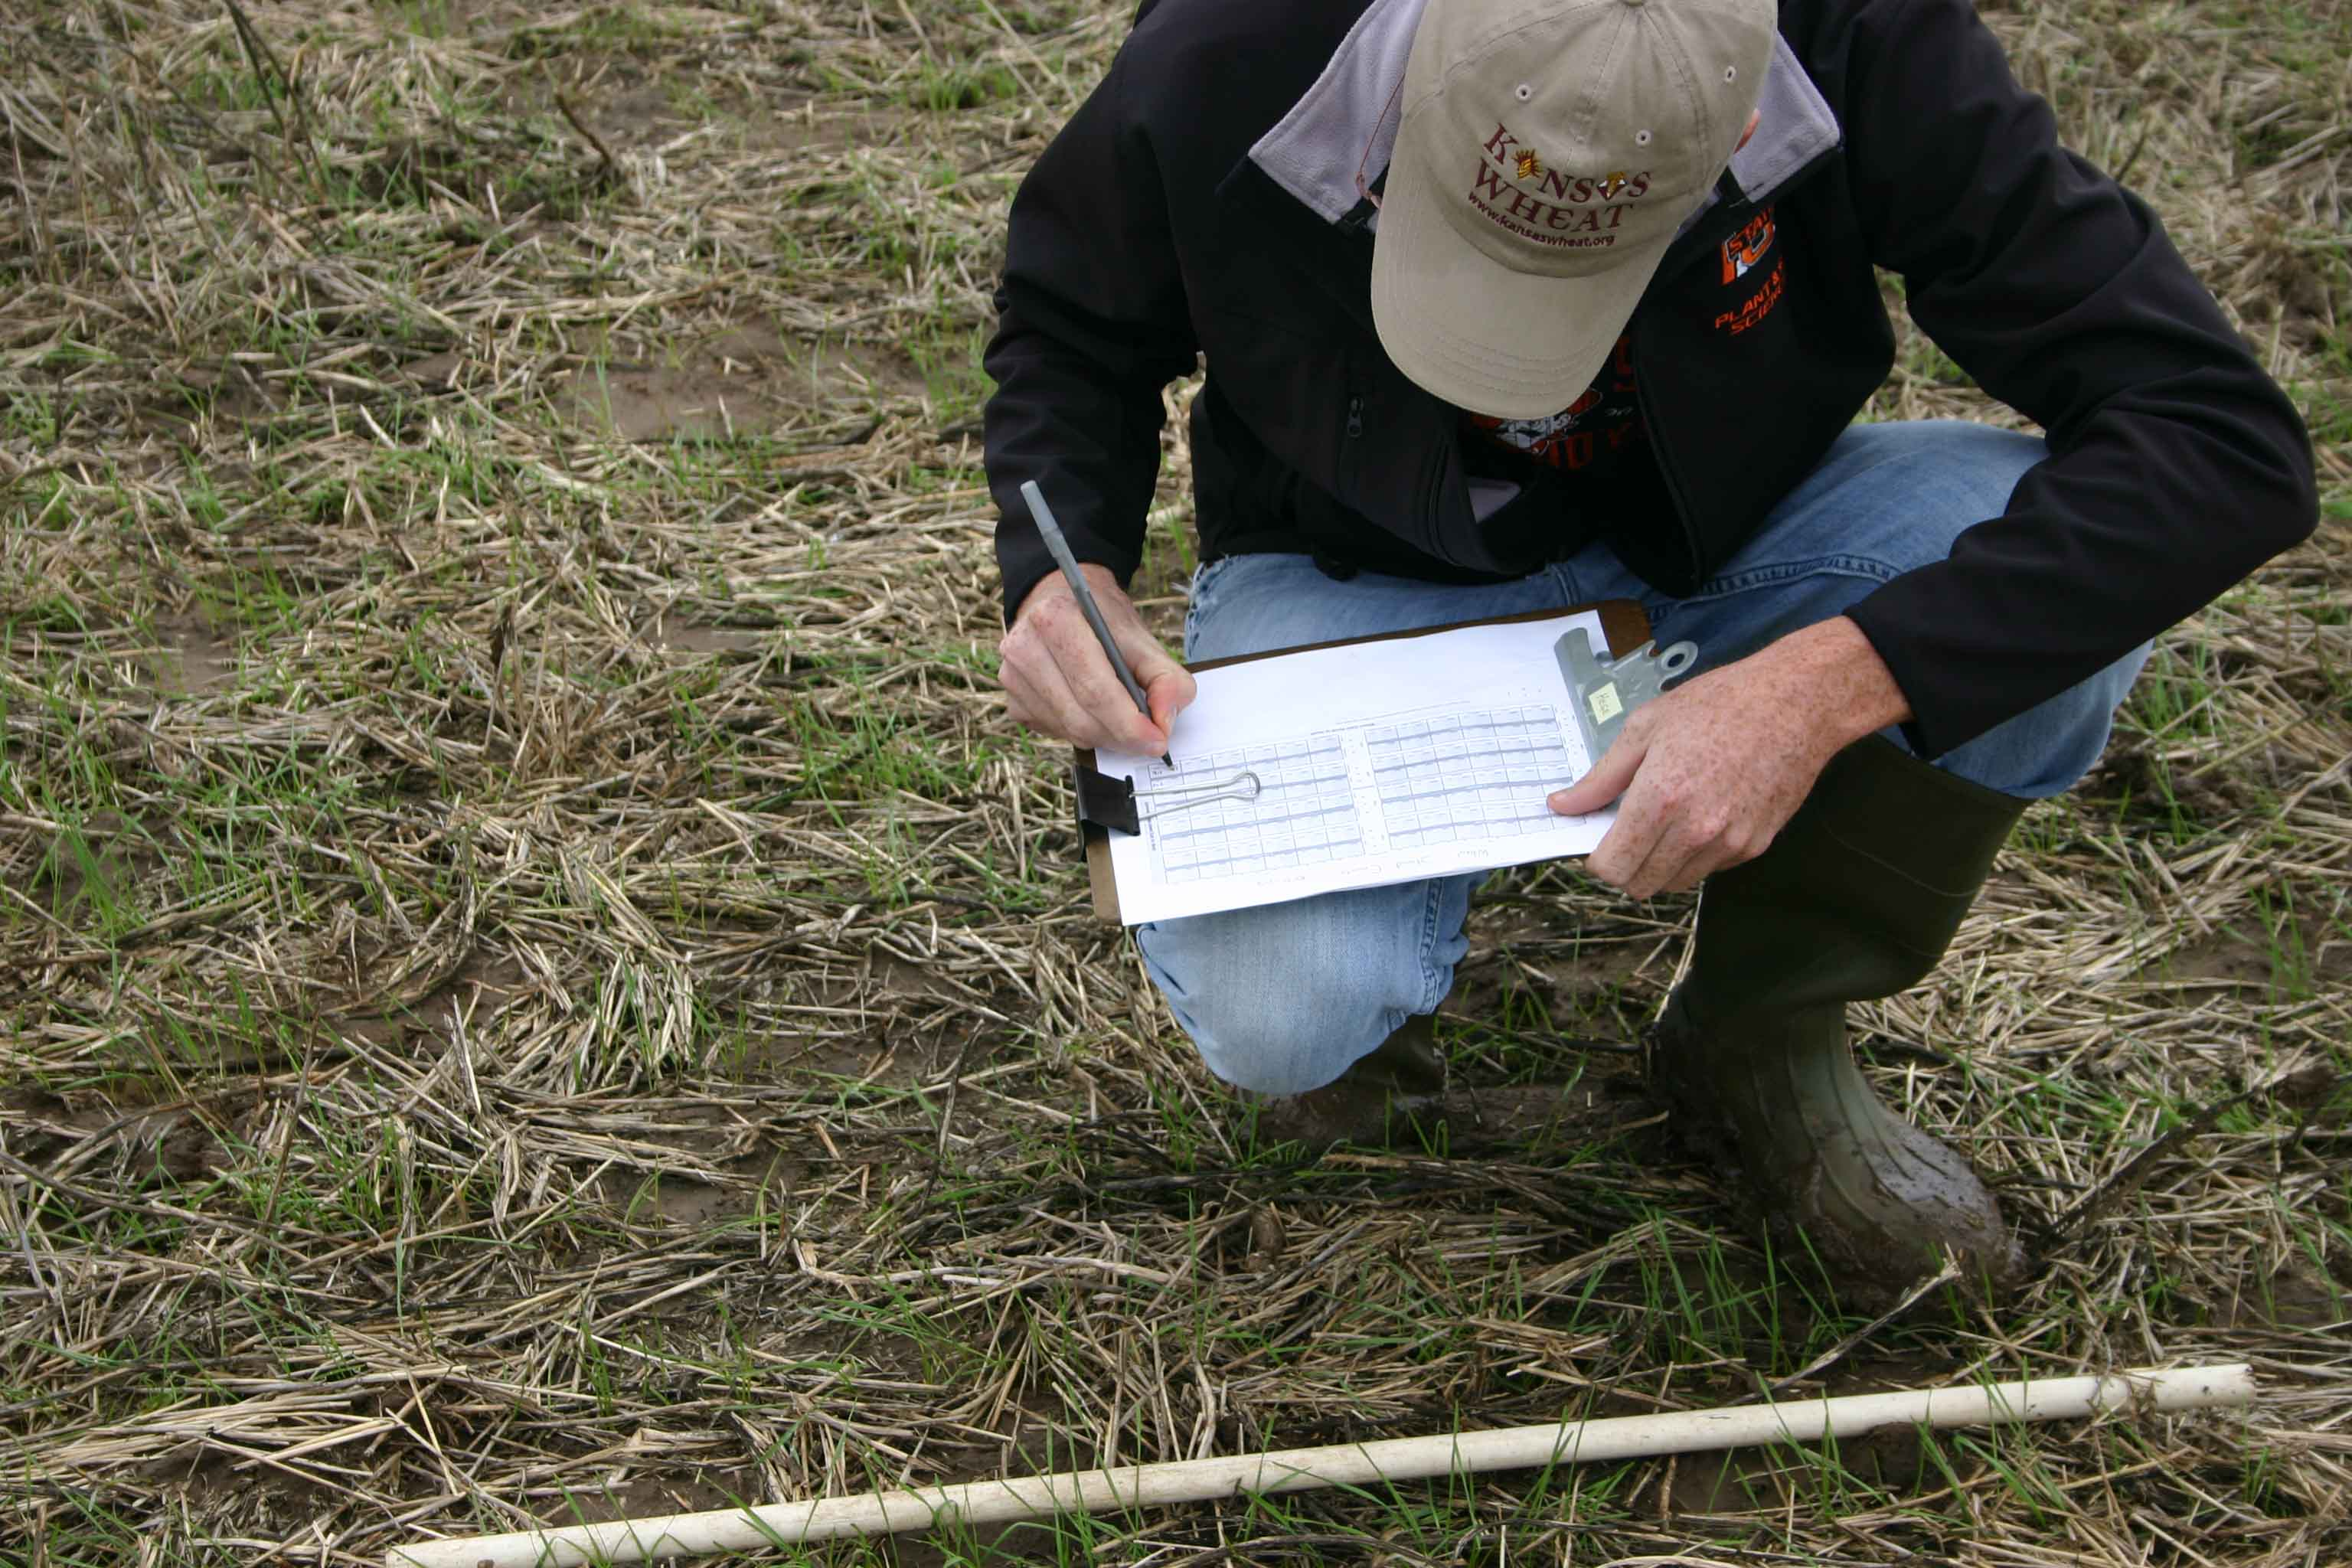 Crop Science student evaluating wheat